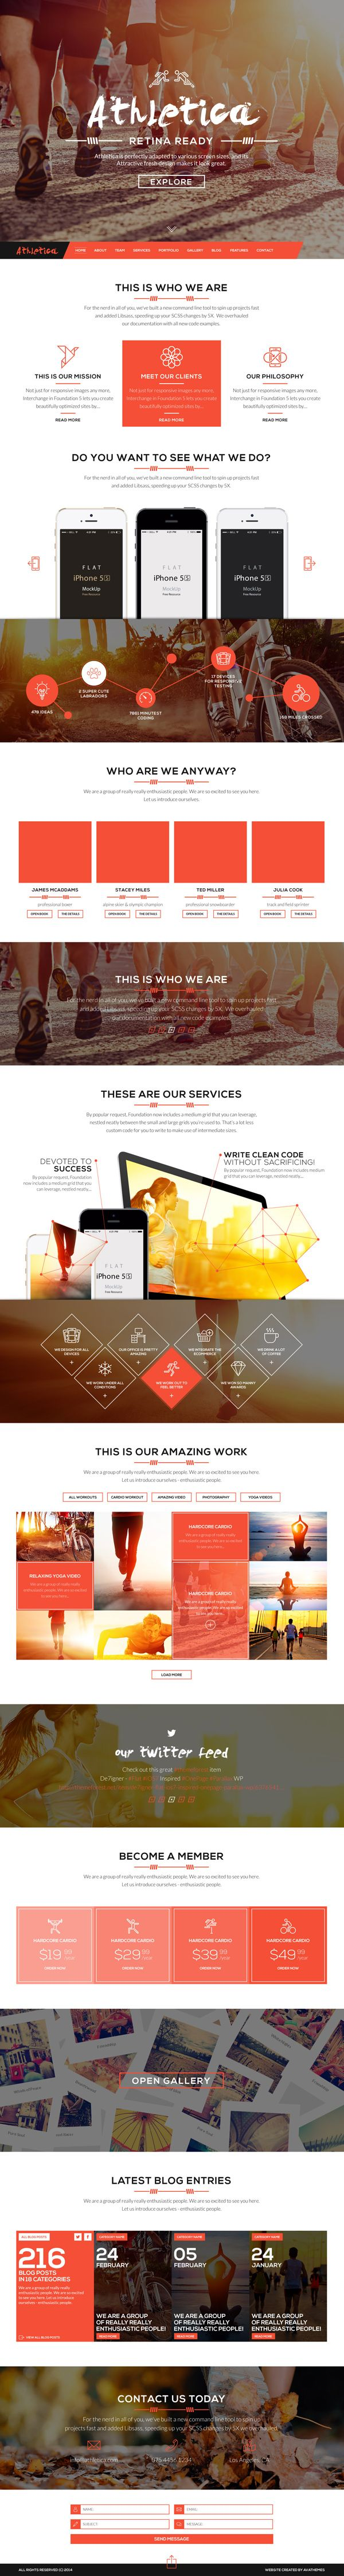 Athletica - Retina Parallax OnePage WP Shop Theme #html5themes